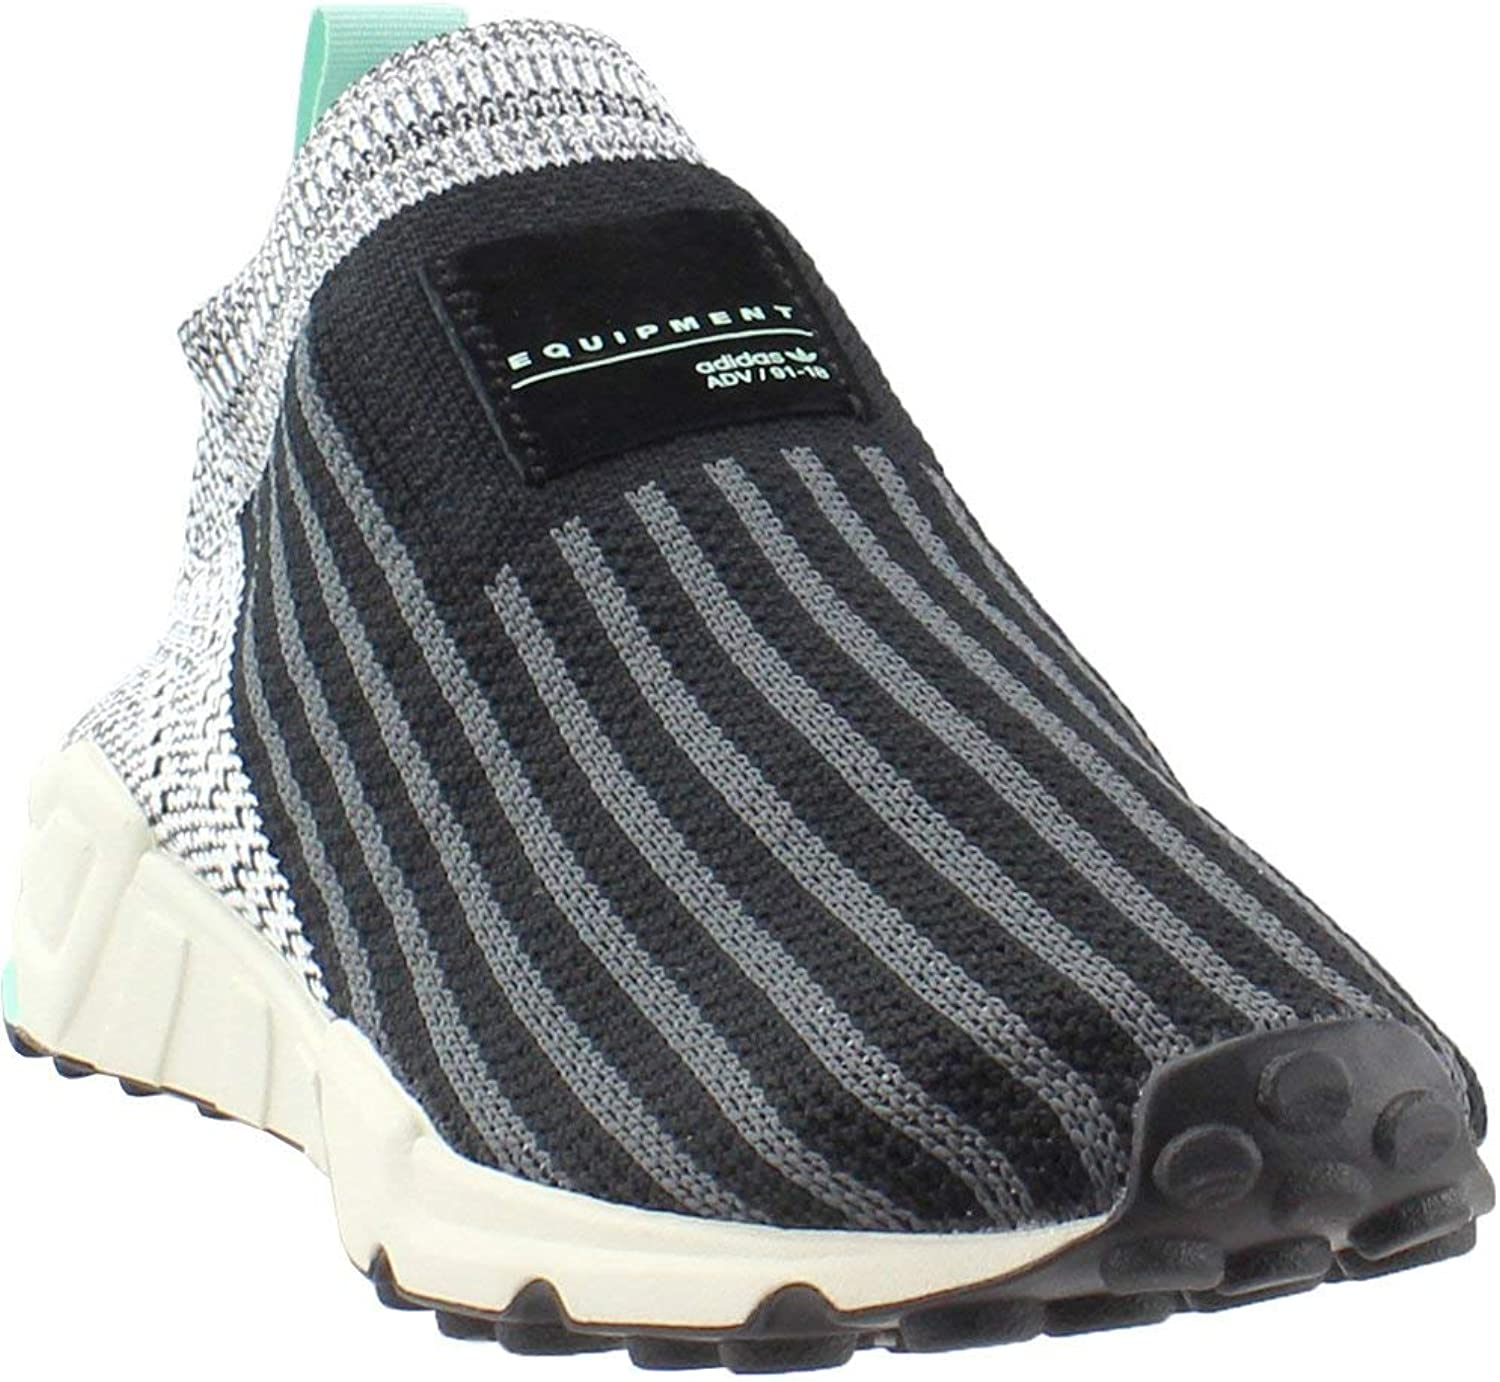 Adidas Womens EQT Support Sock Primeknit Athletic & Sneakers